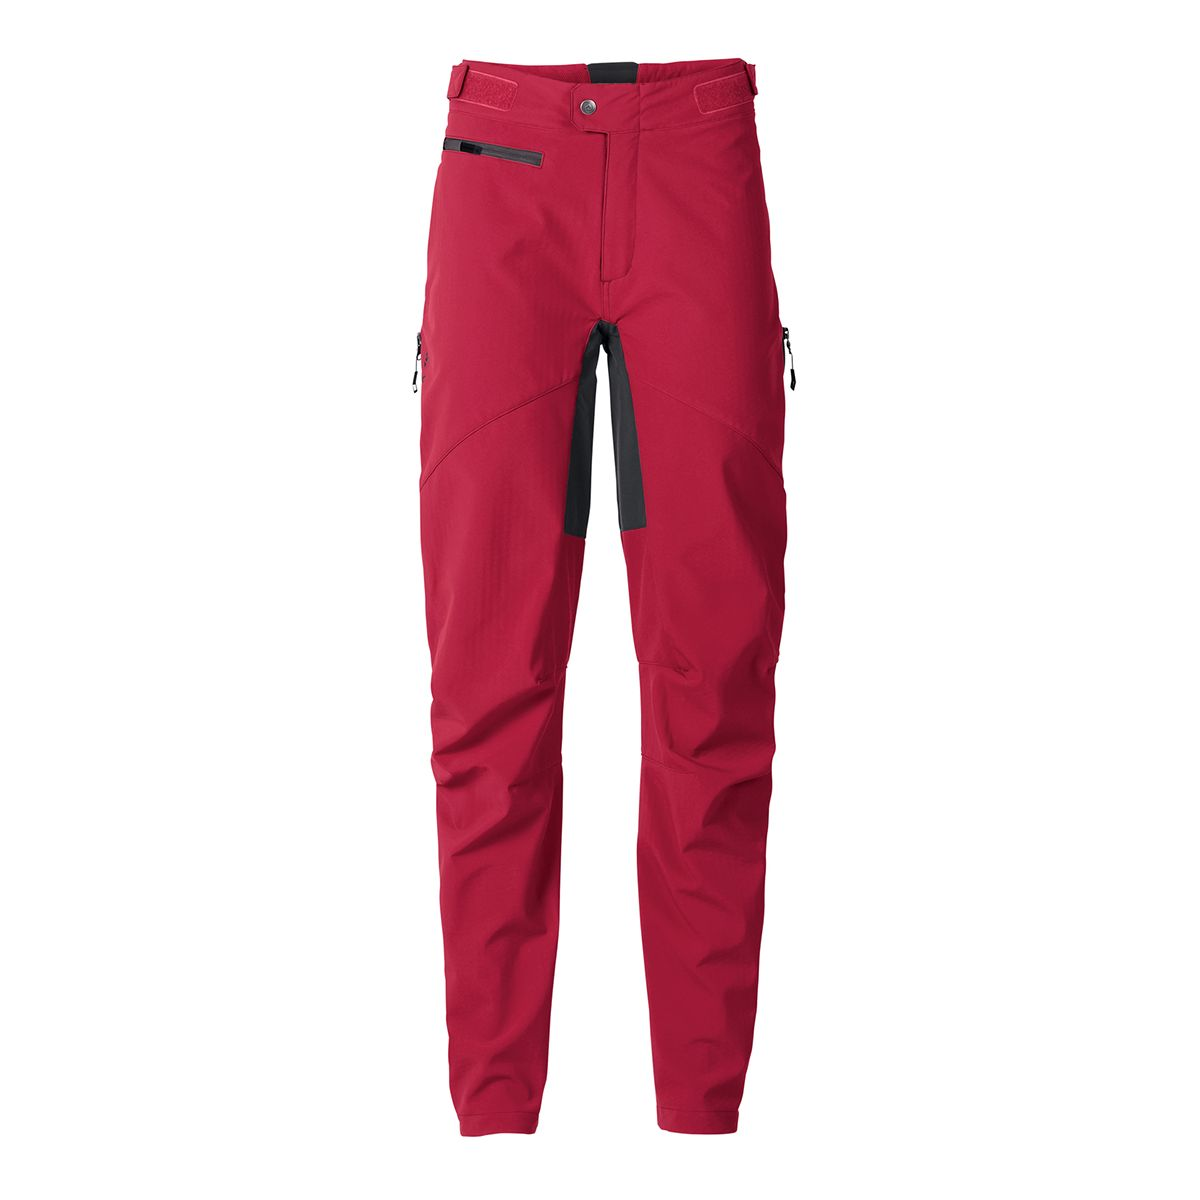 QIMSA II women's softshell trousers